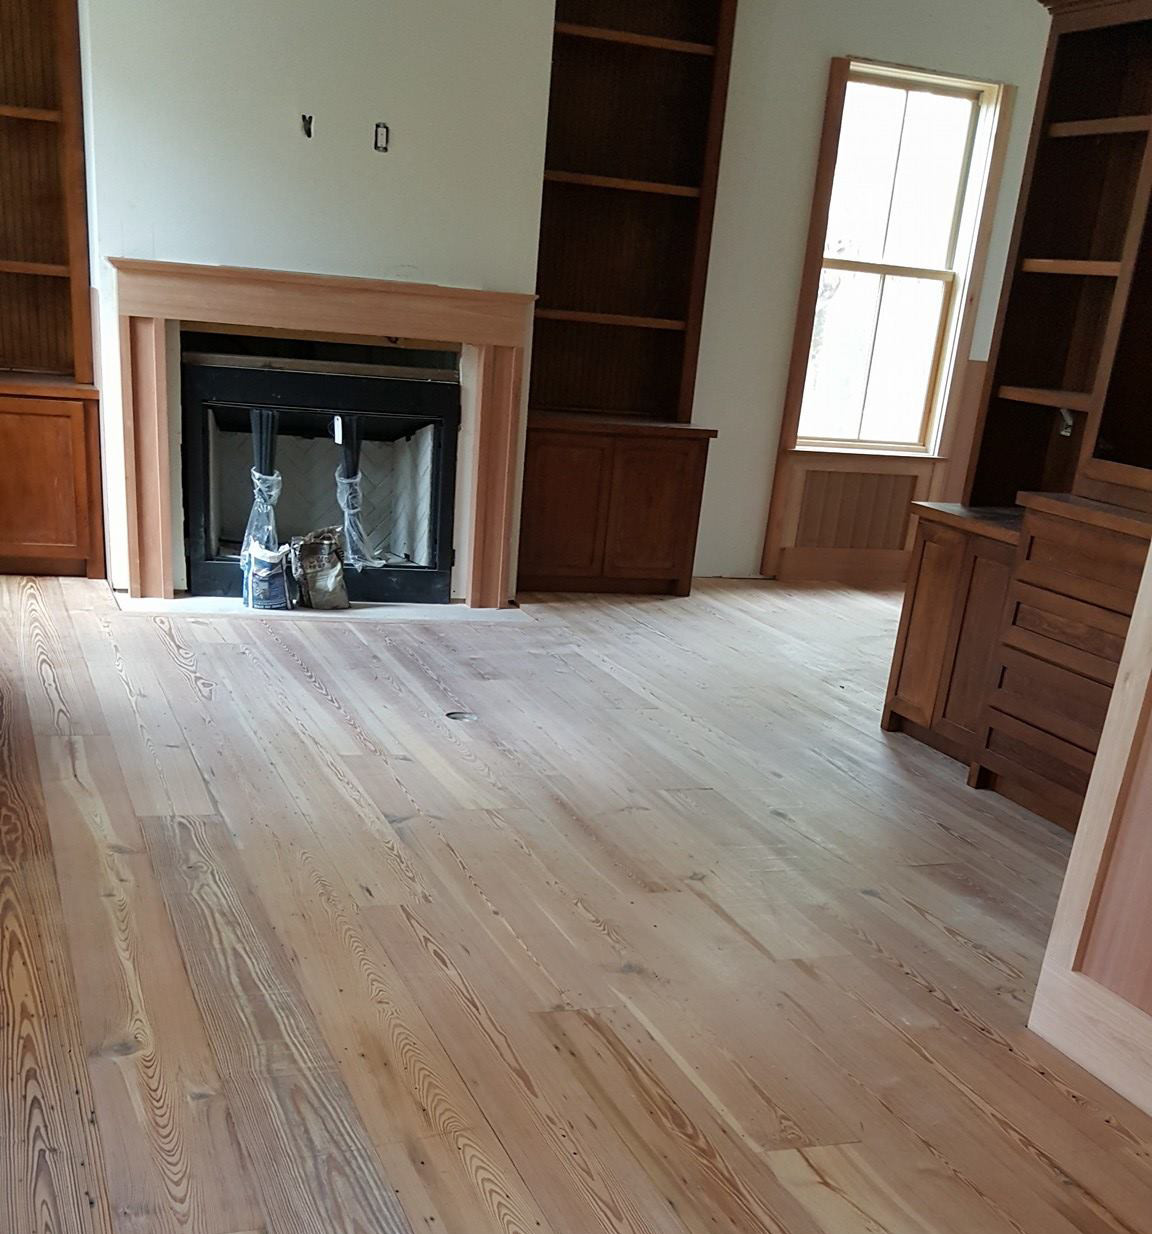 staining hardwood floors of olde savannah hardwood flooring inside sand and refinish existing floors